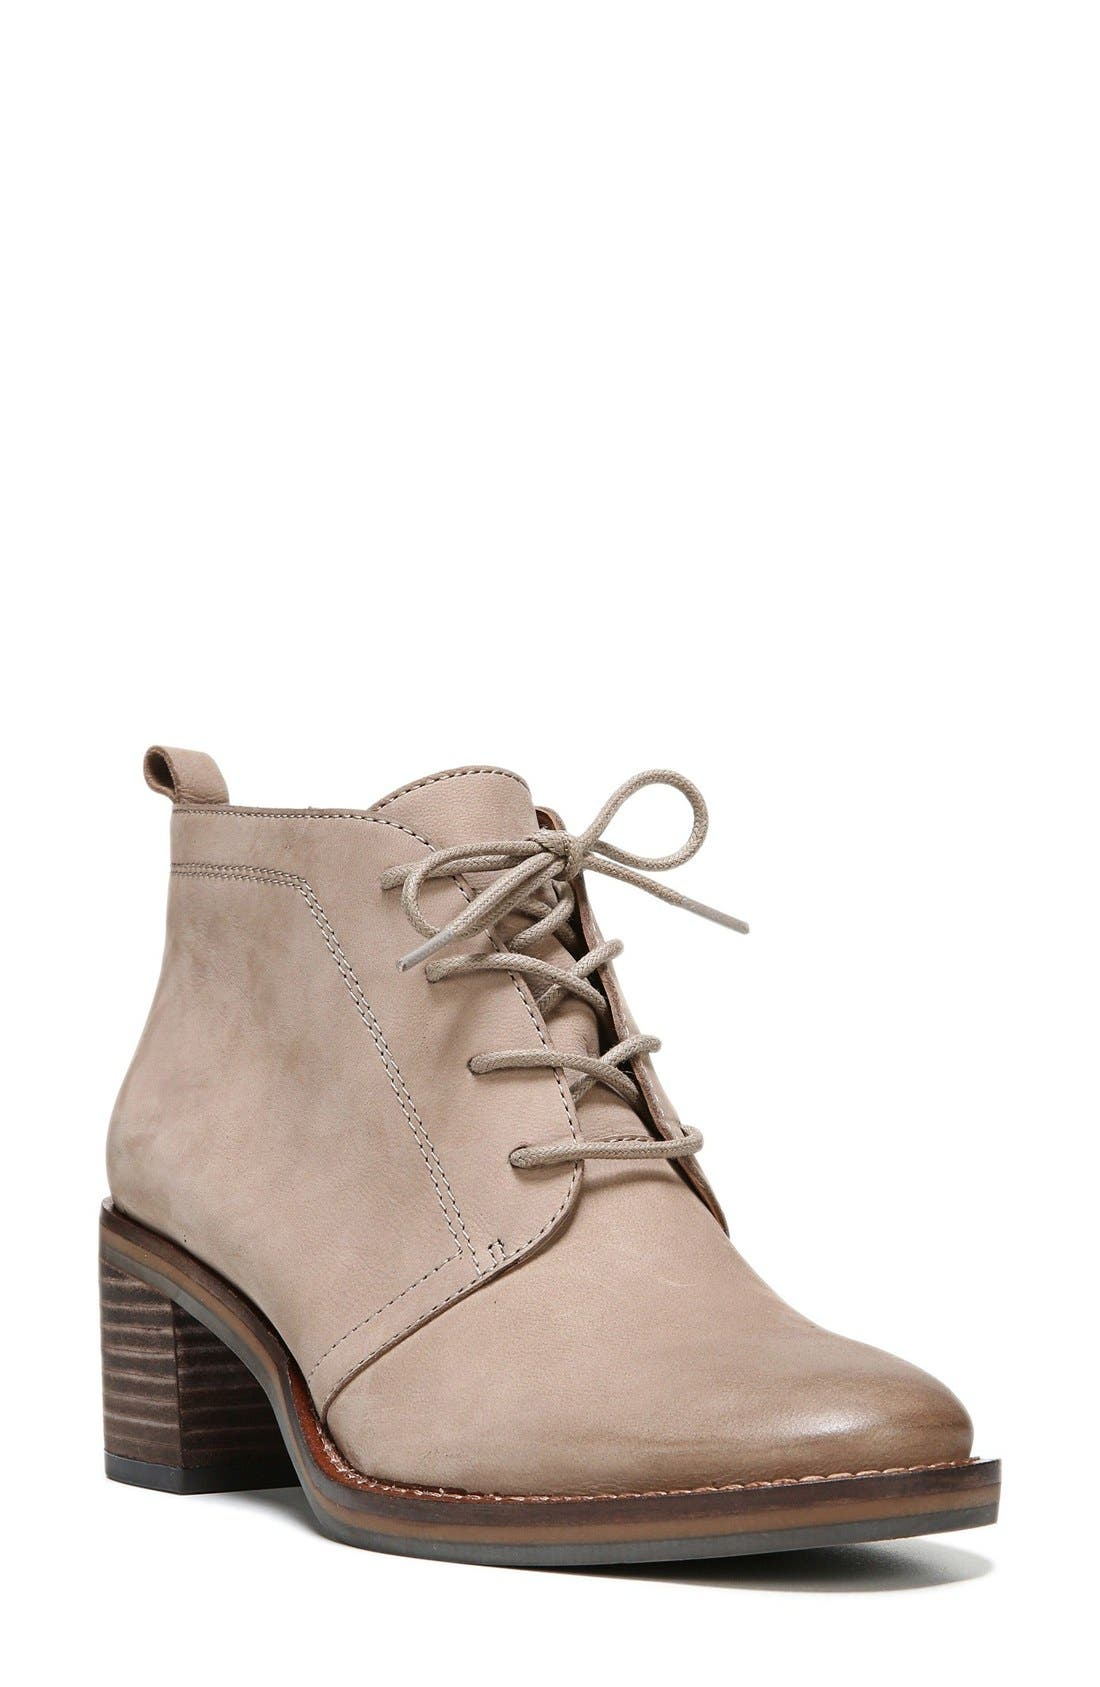 Alternate Image 1 Selected - SARTO by Franco Sarto 'Bethea' Lace-Up Bootie (Women)